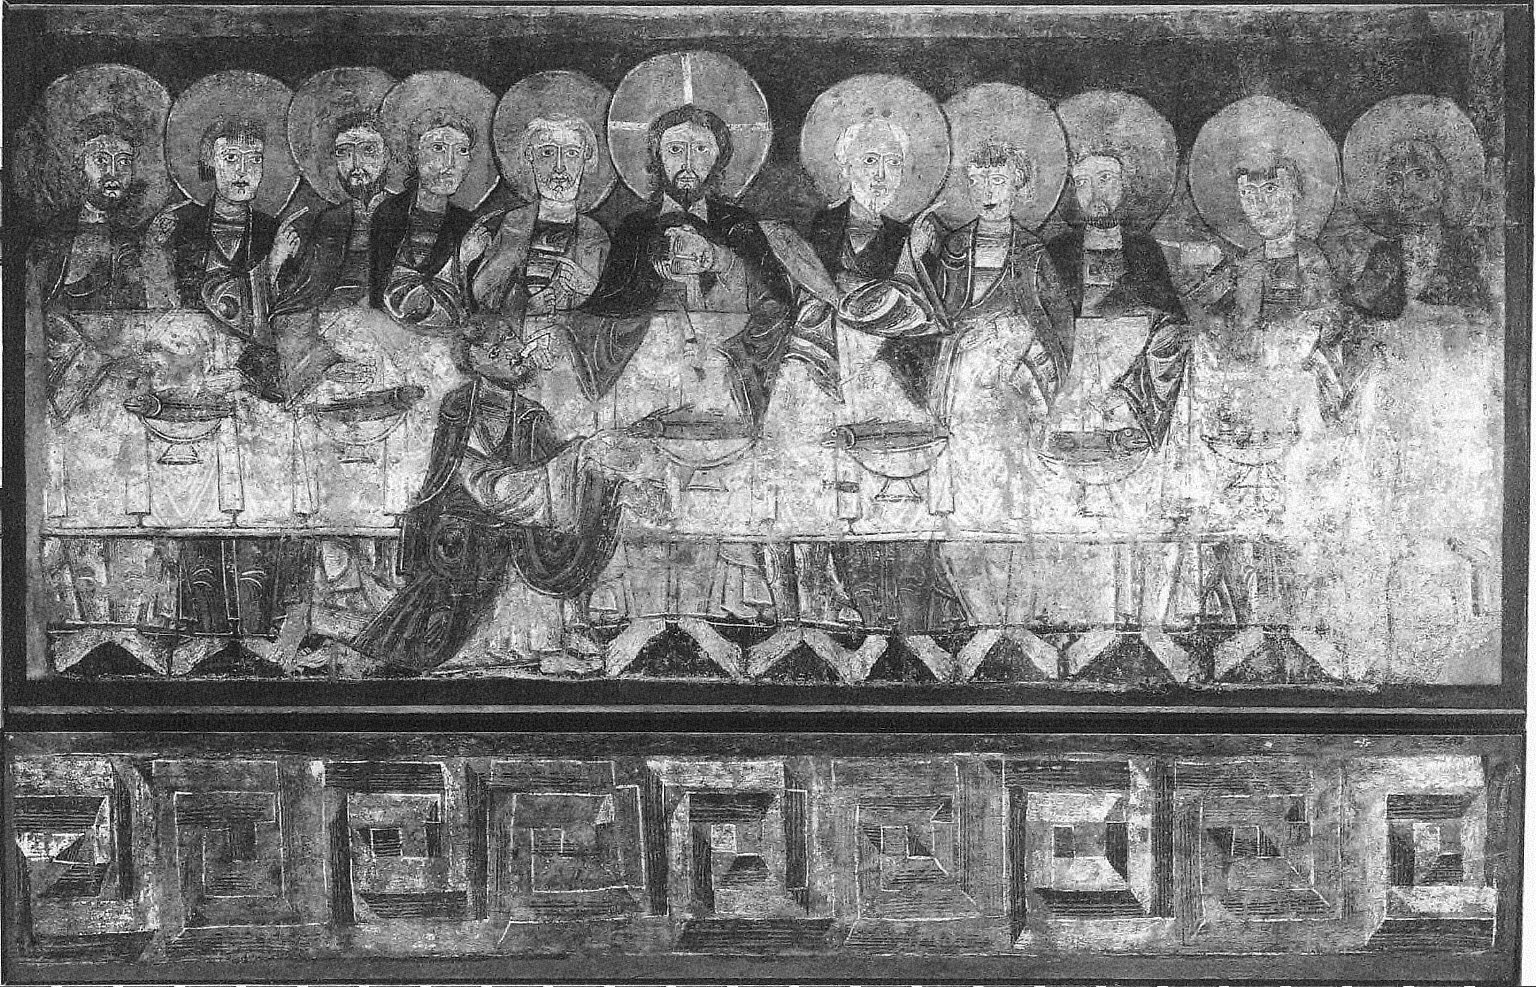 The Last Supper and Ribbon Meander Frieze (from the church of San Baudelio near Berlanga)